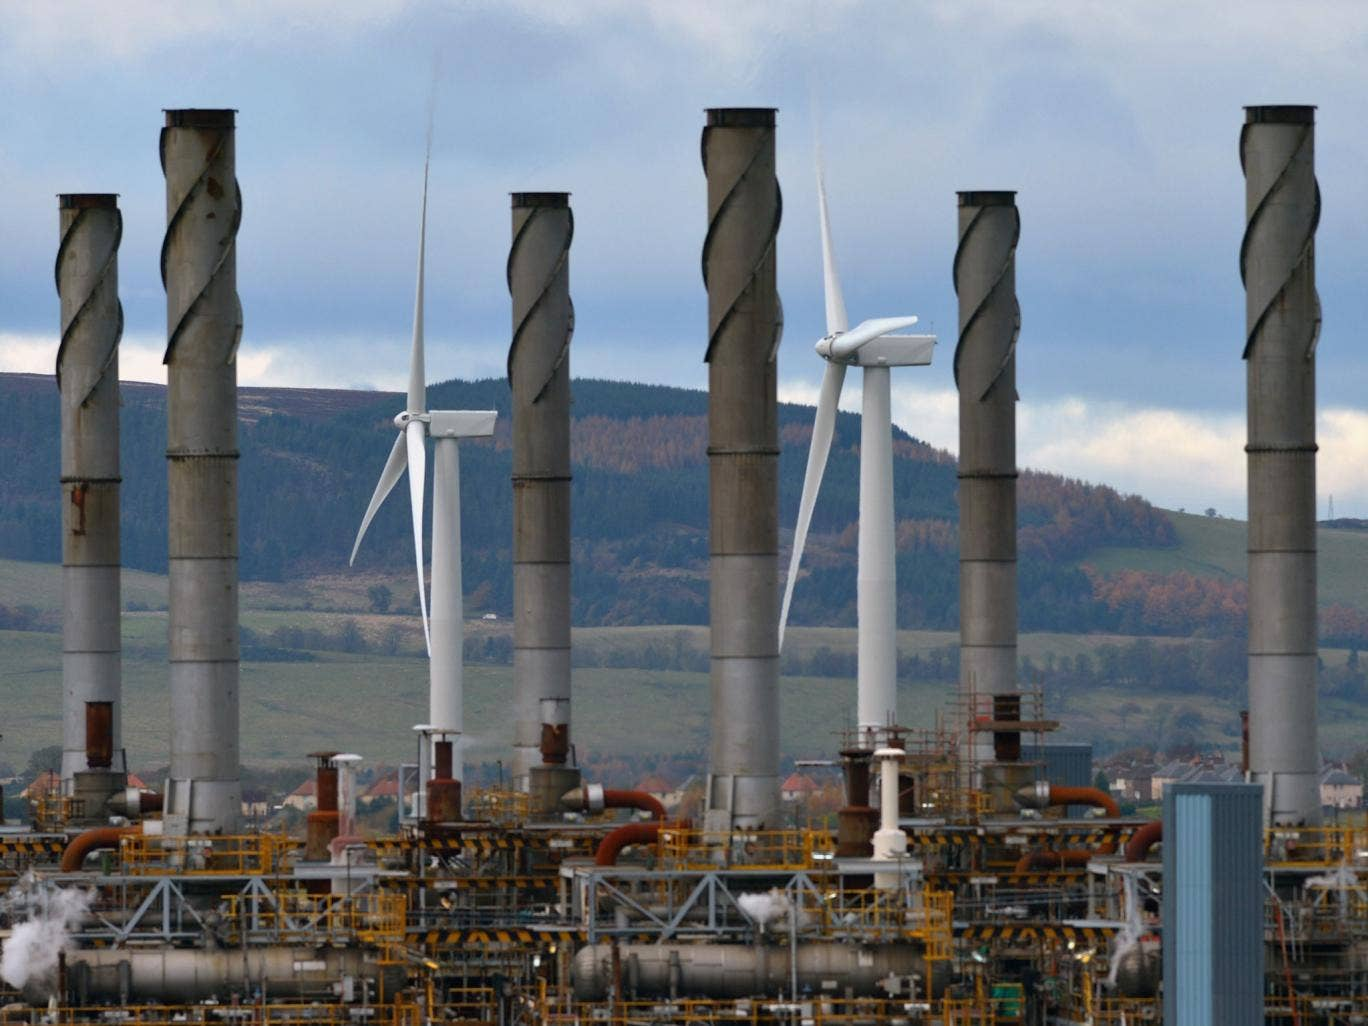 Comments by the Energy Secretary Owen Paterson that wind farms were inappropriate technology have alarmed some Tory MPs